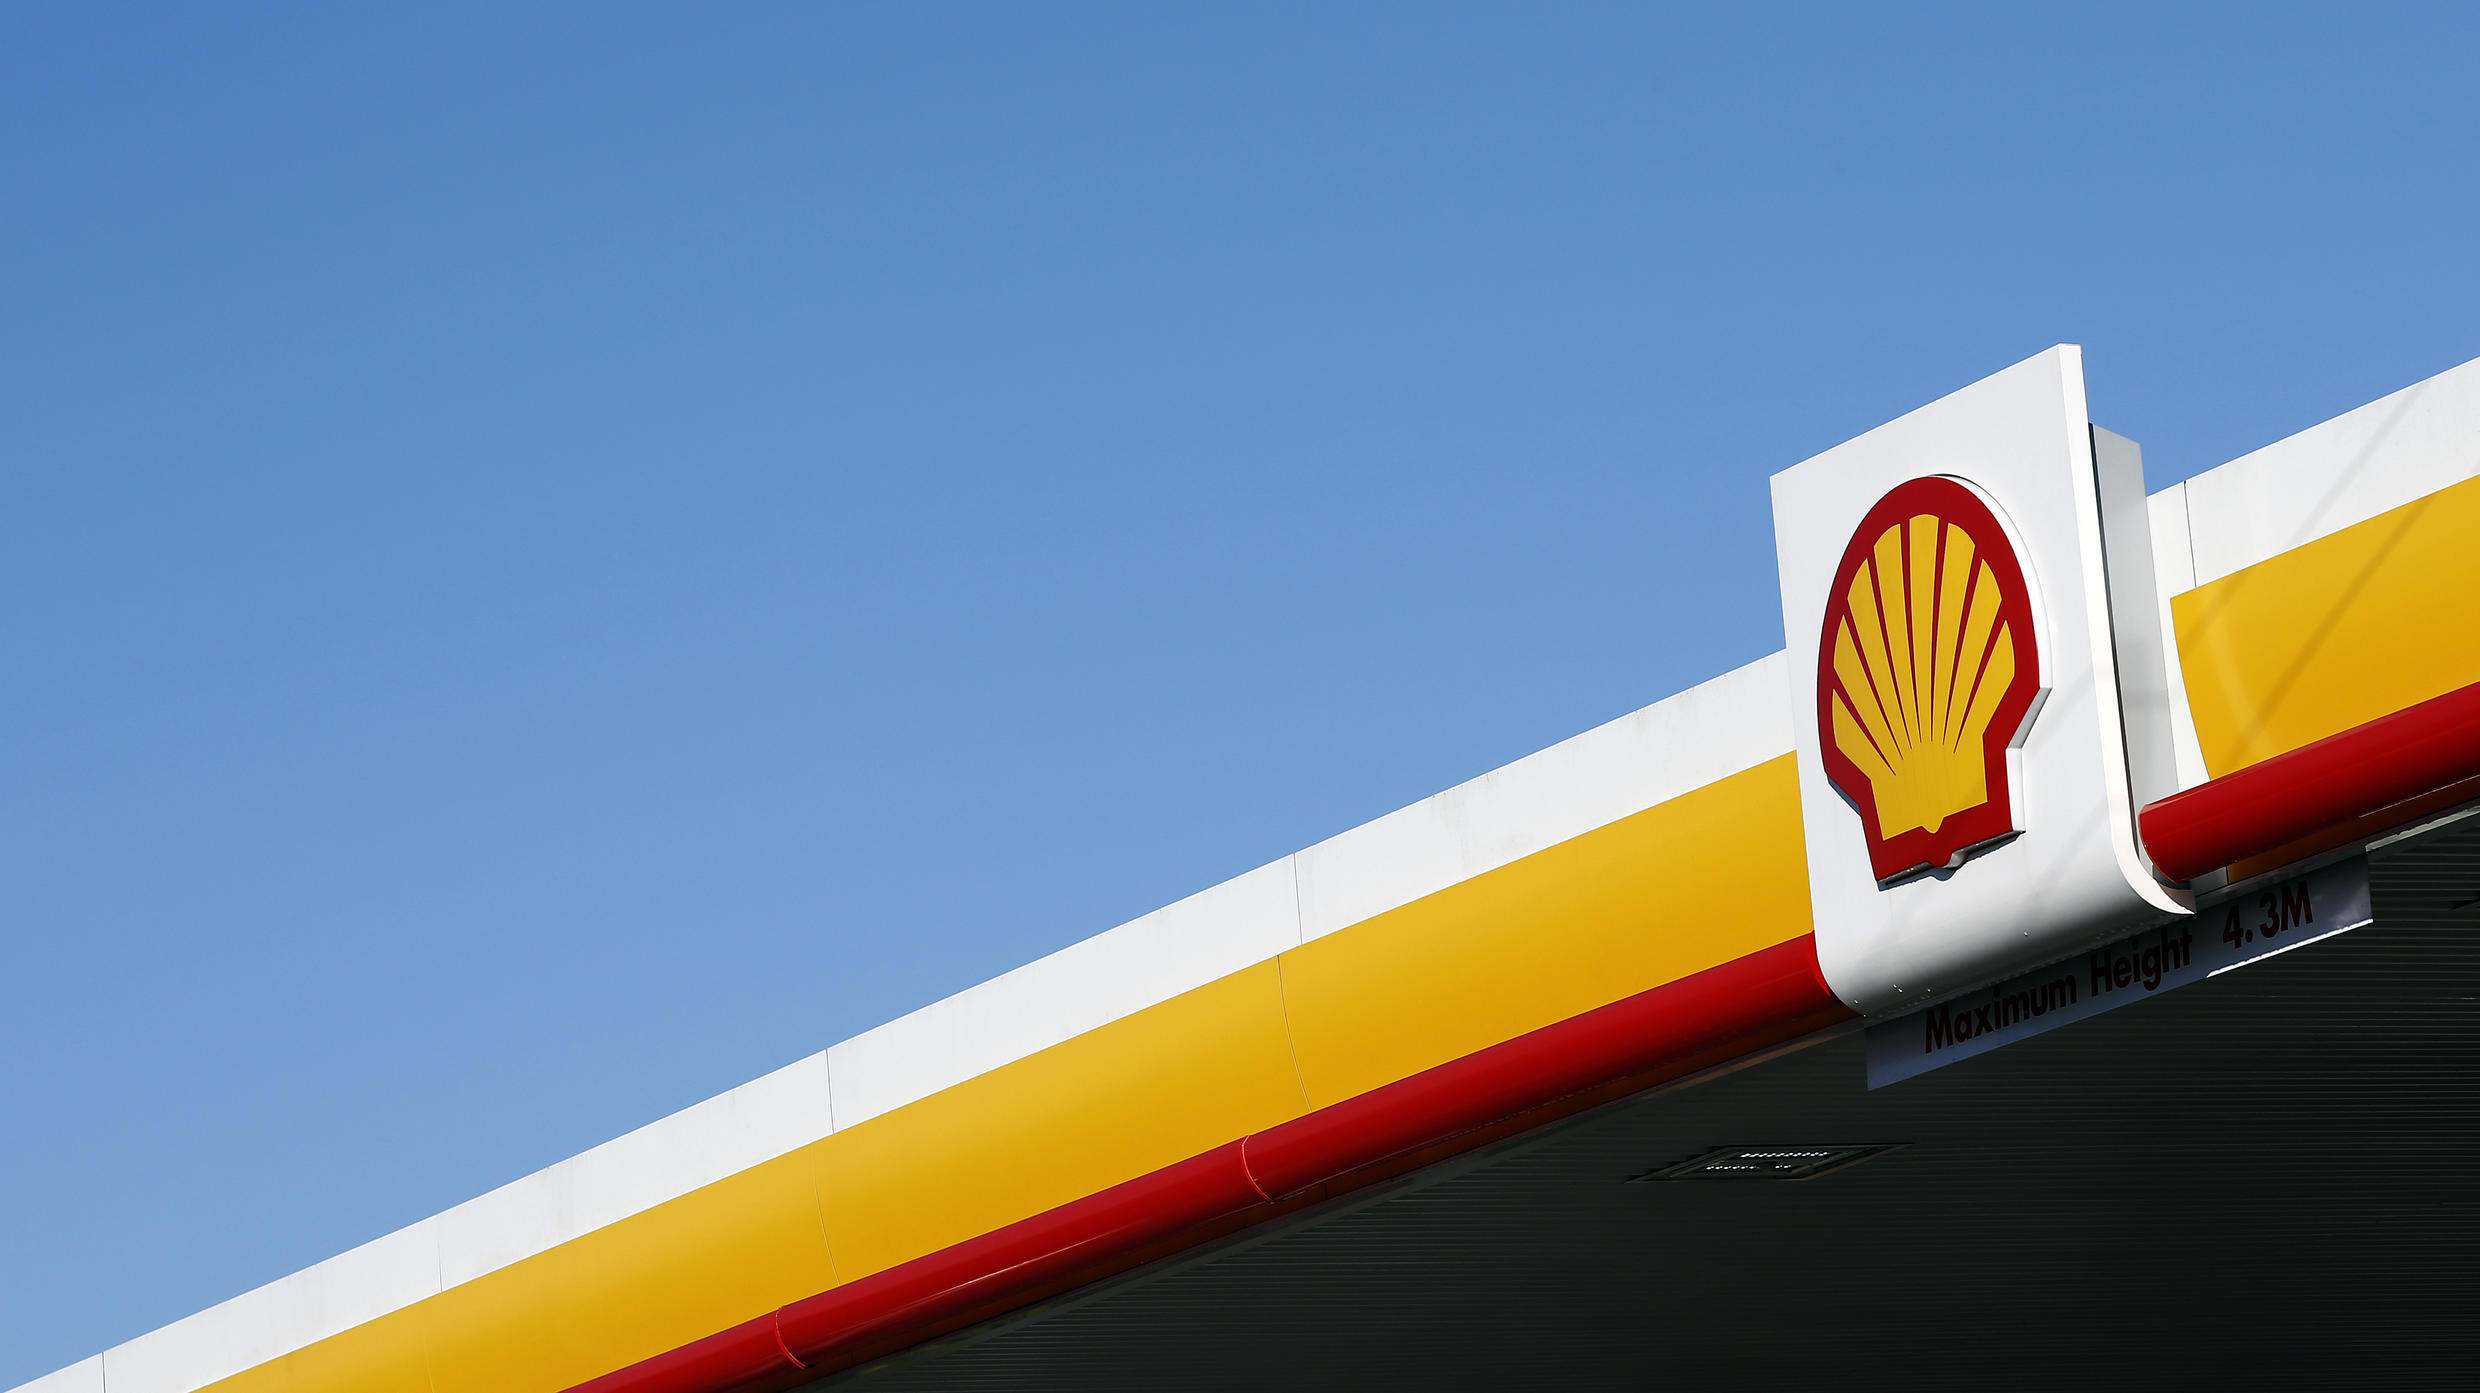 Activists say Shell's plans to plant trees to offset carbon emissions are unrealistic